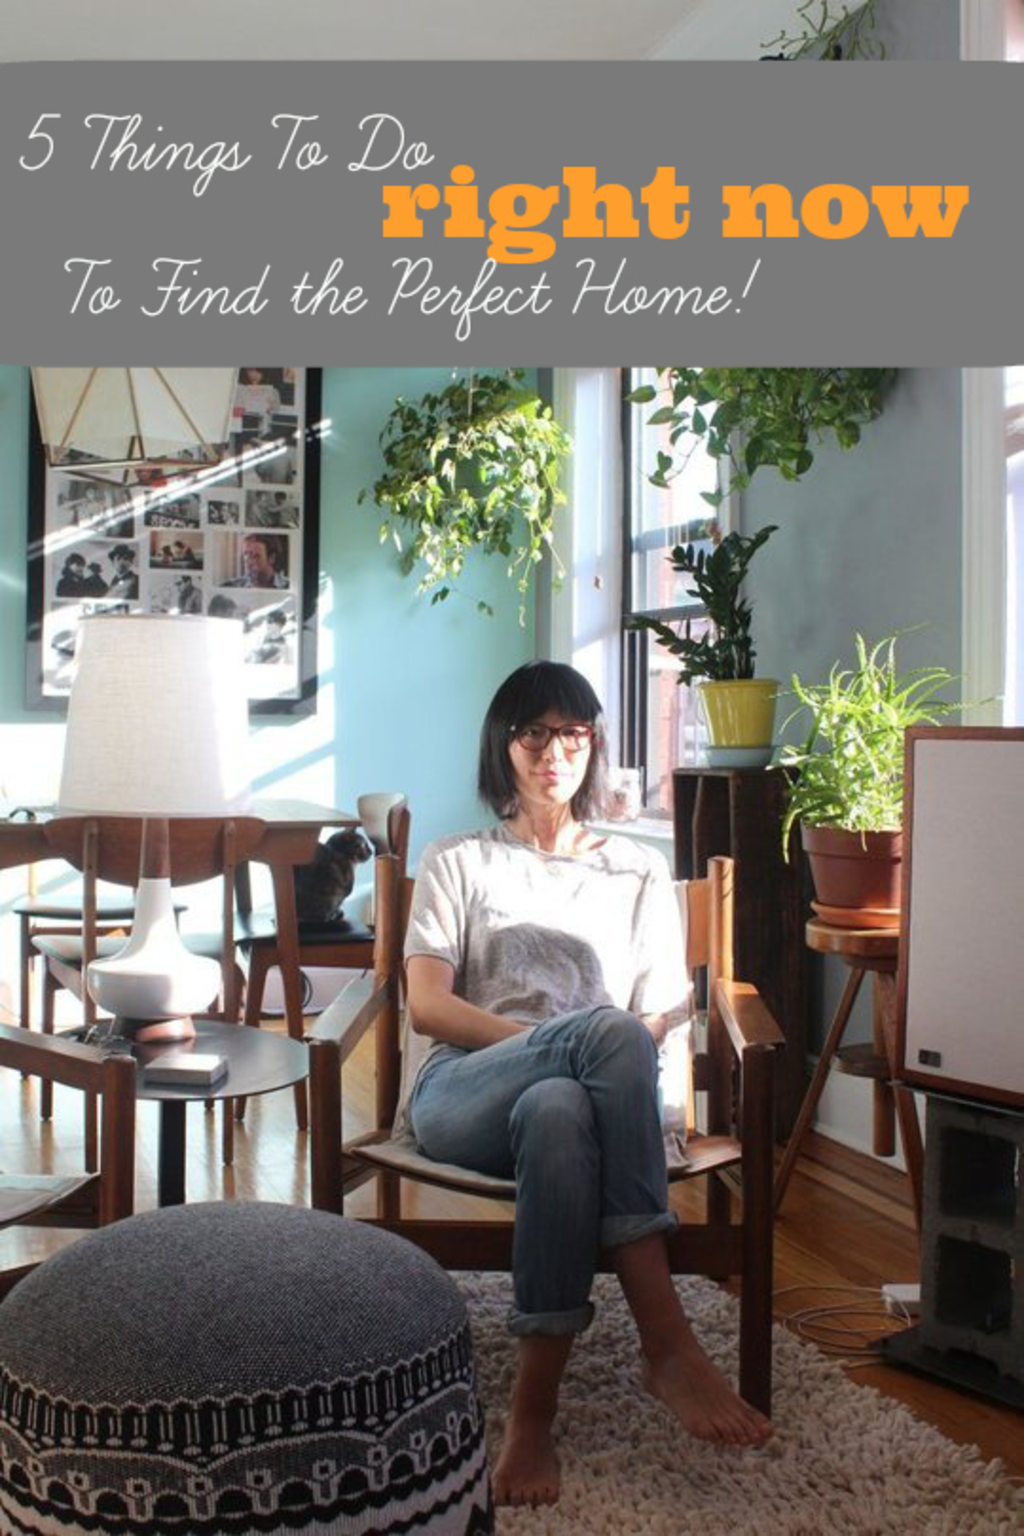 Apartment Search Secrets: 5 Things To Do Right Now to Find the Perfect Home